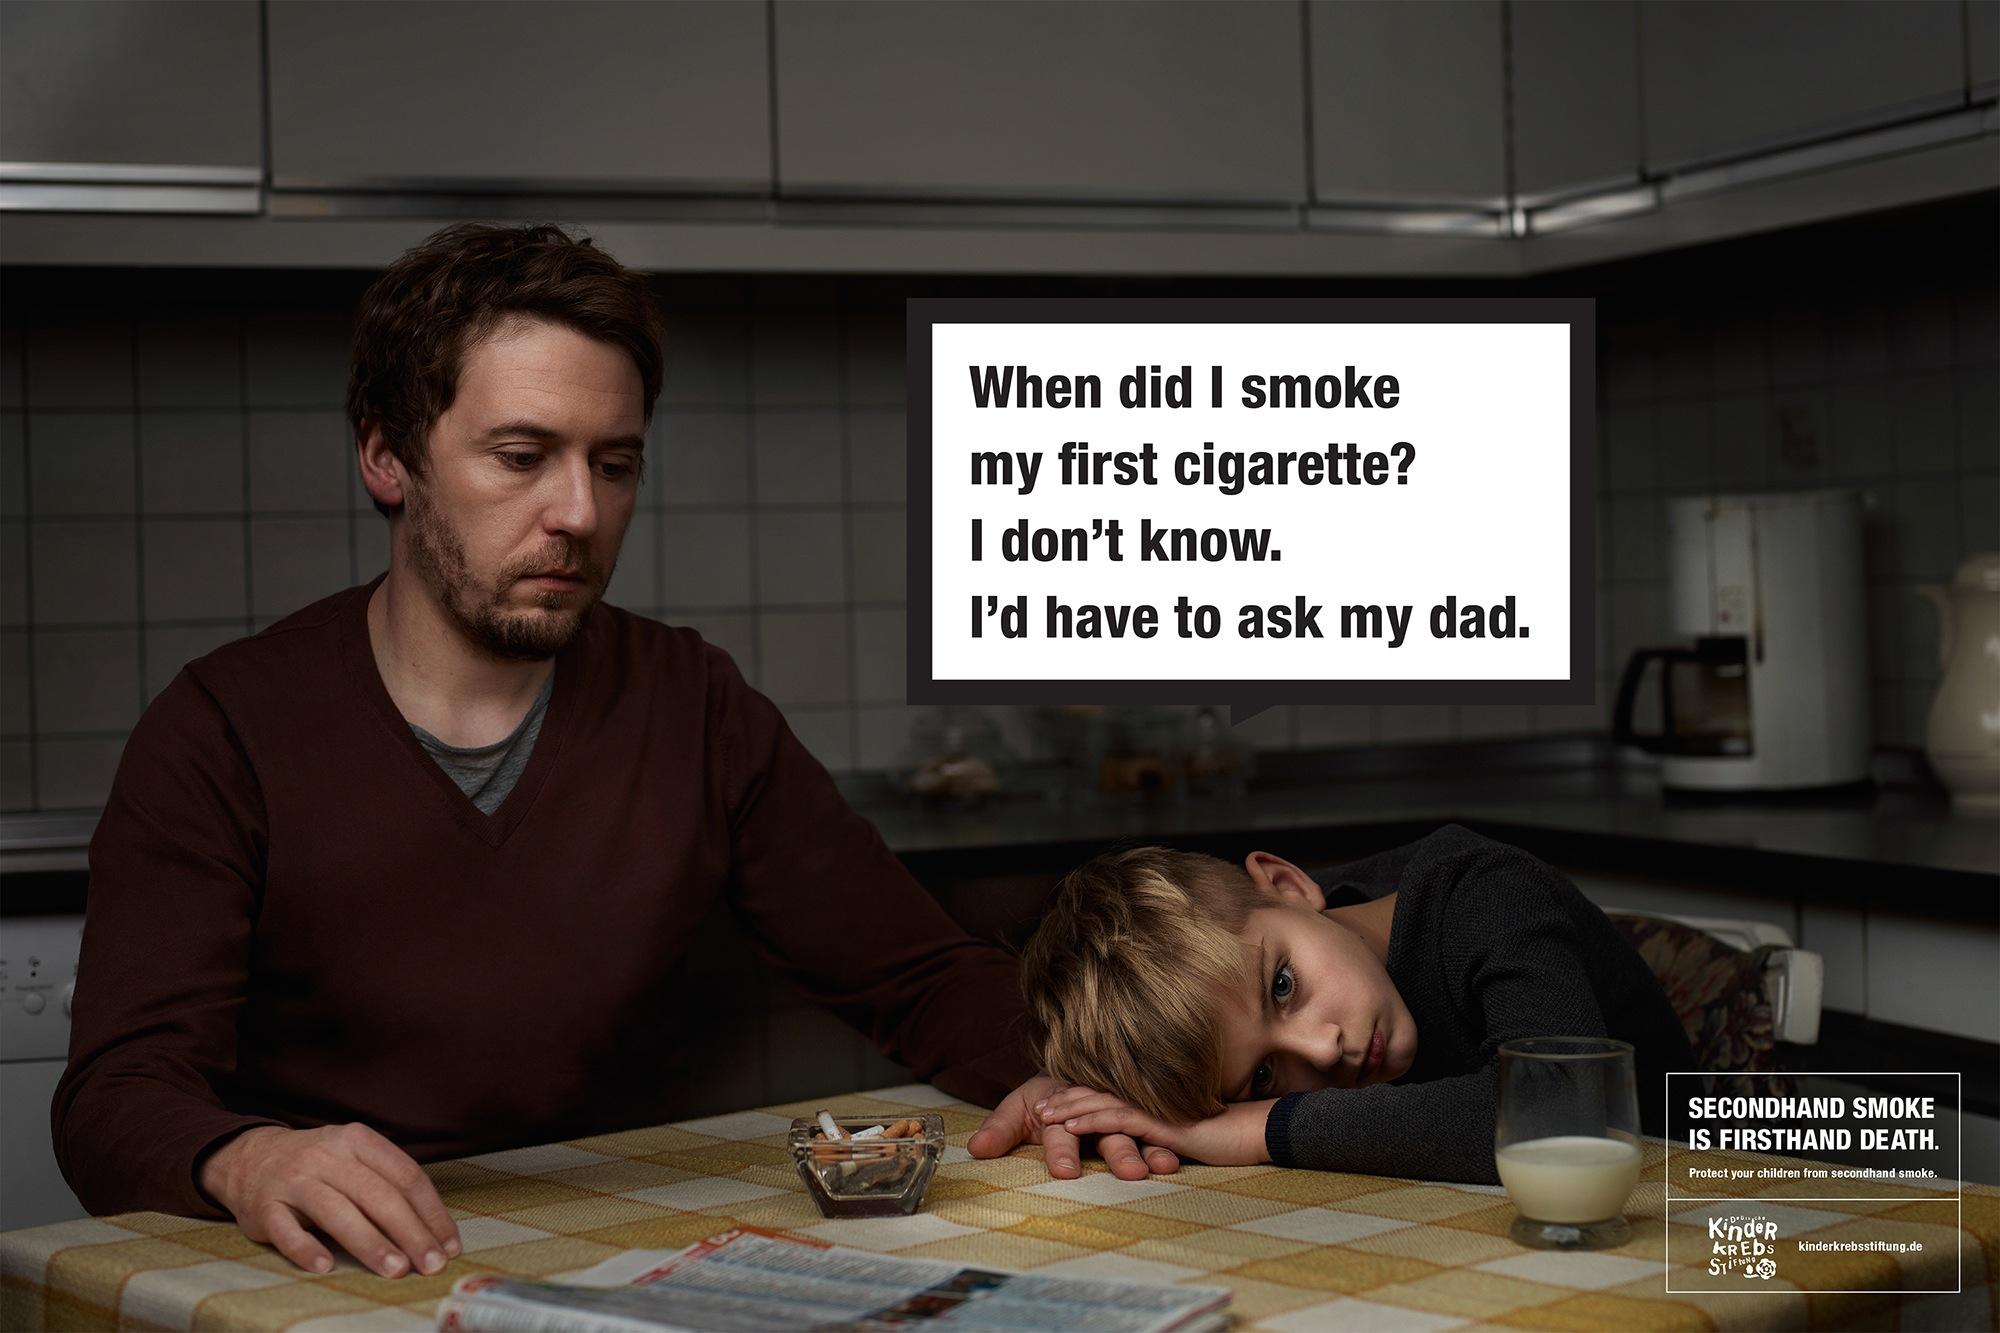 Deutsche Kinderkrebsstiftung Outdoor Ad -  Secondhand smoke, 2